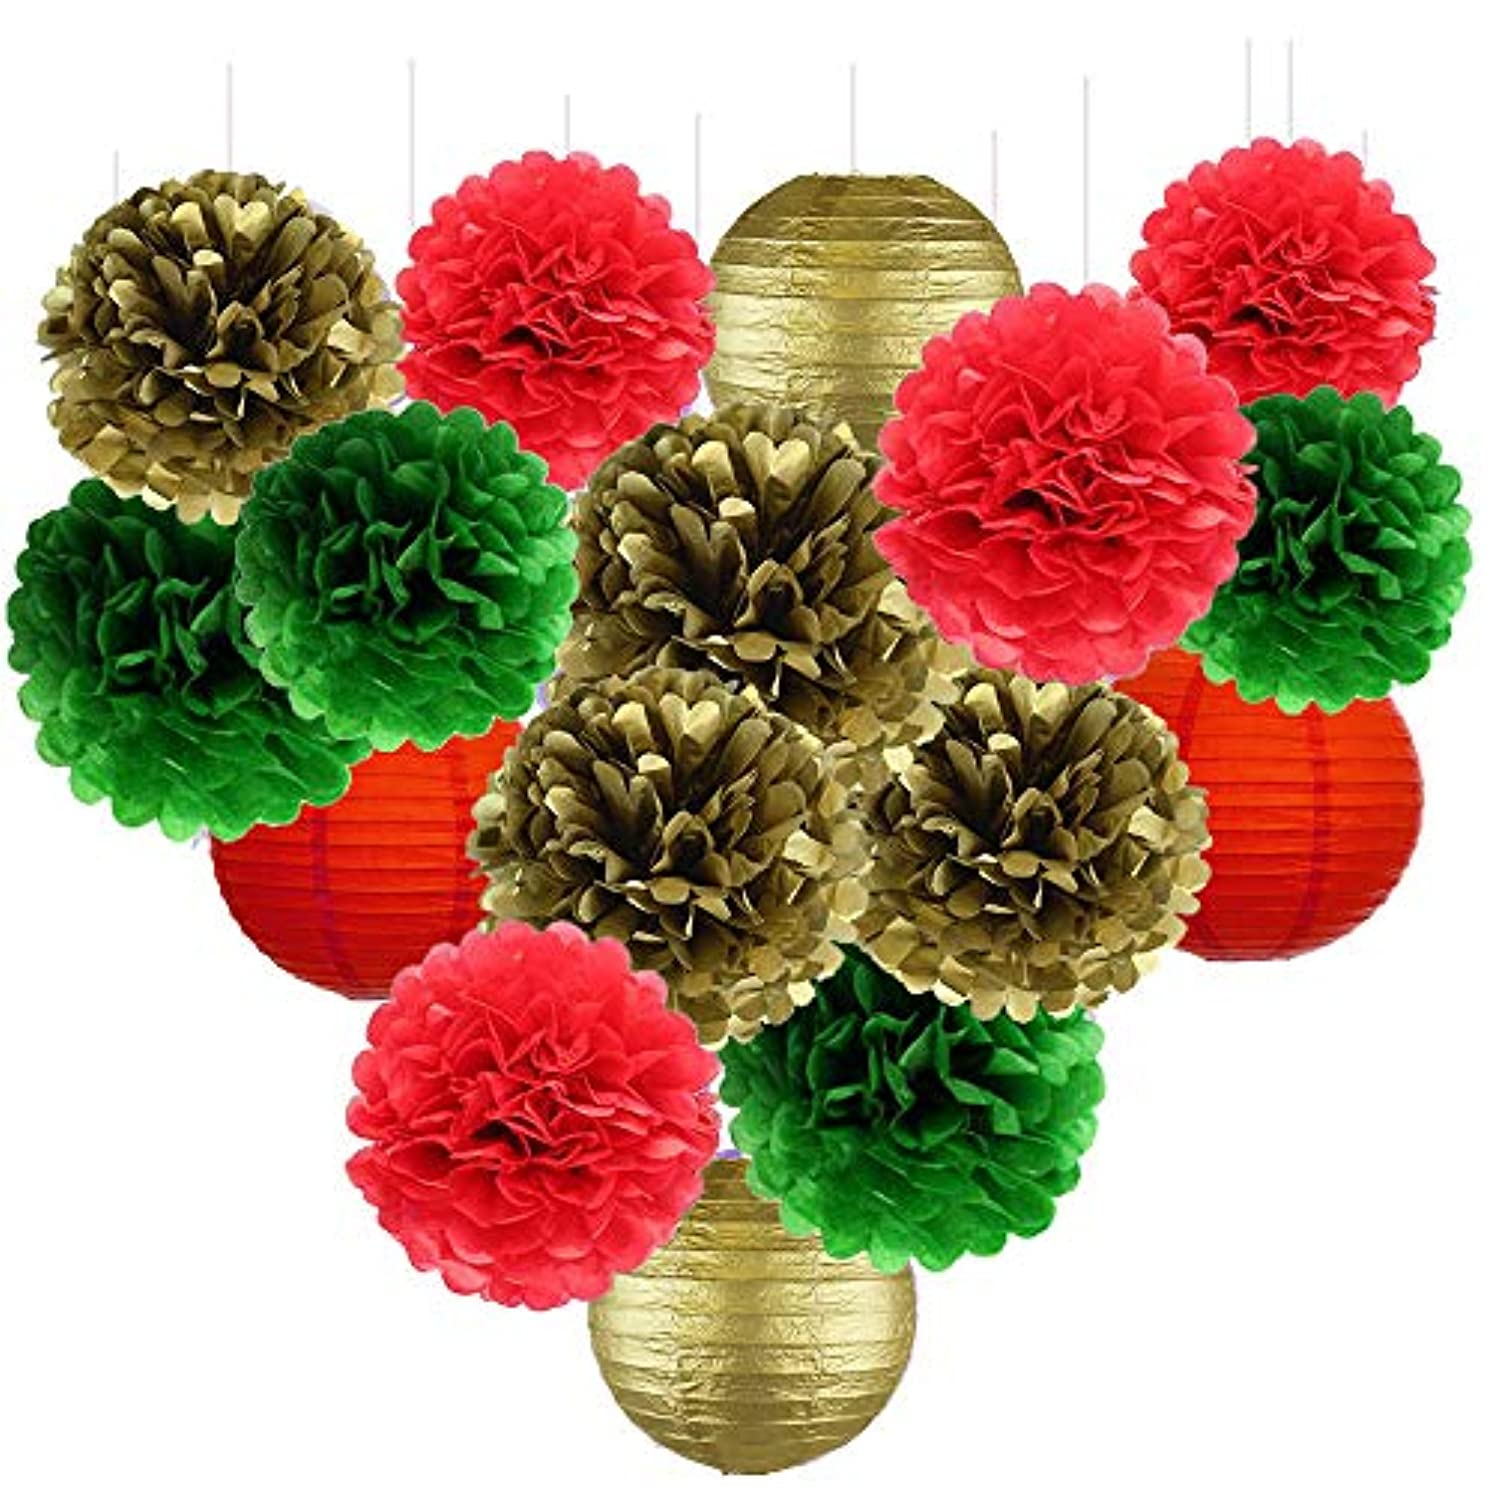 Fascola Pack of 16 Pieces Christmas New Year Hanging Decoration Paper Pom Poms Flowers Xmas Party Favor Baby Shower Birthday Wedding Home Decoration Red Green Green